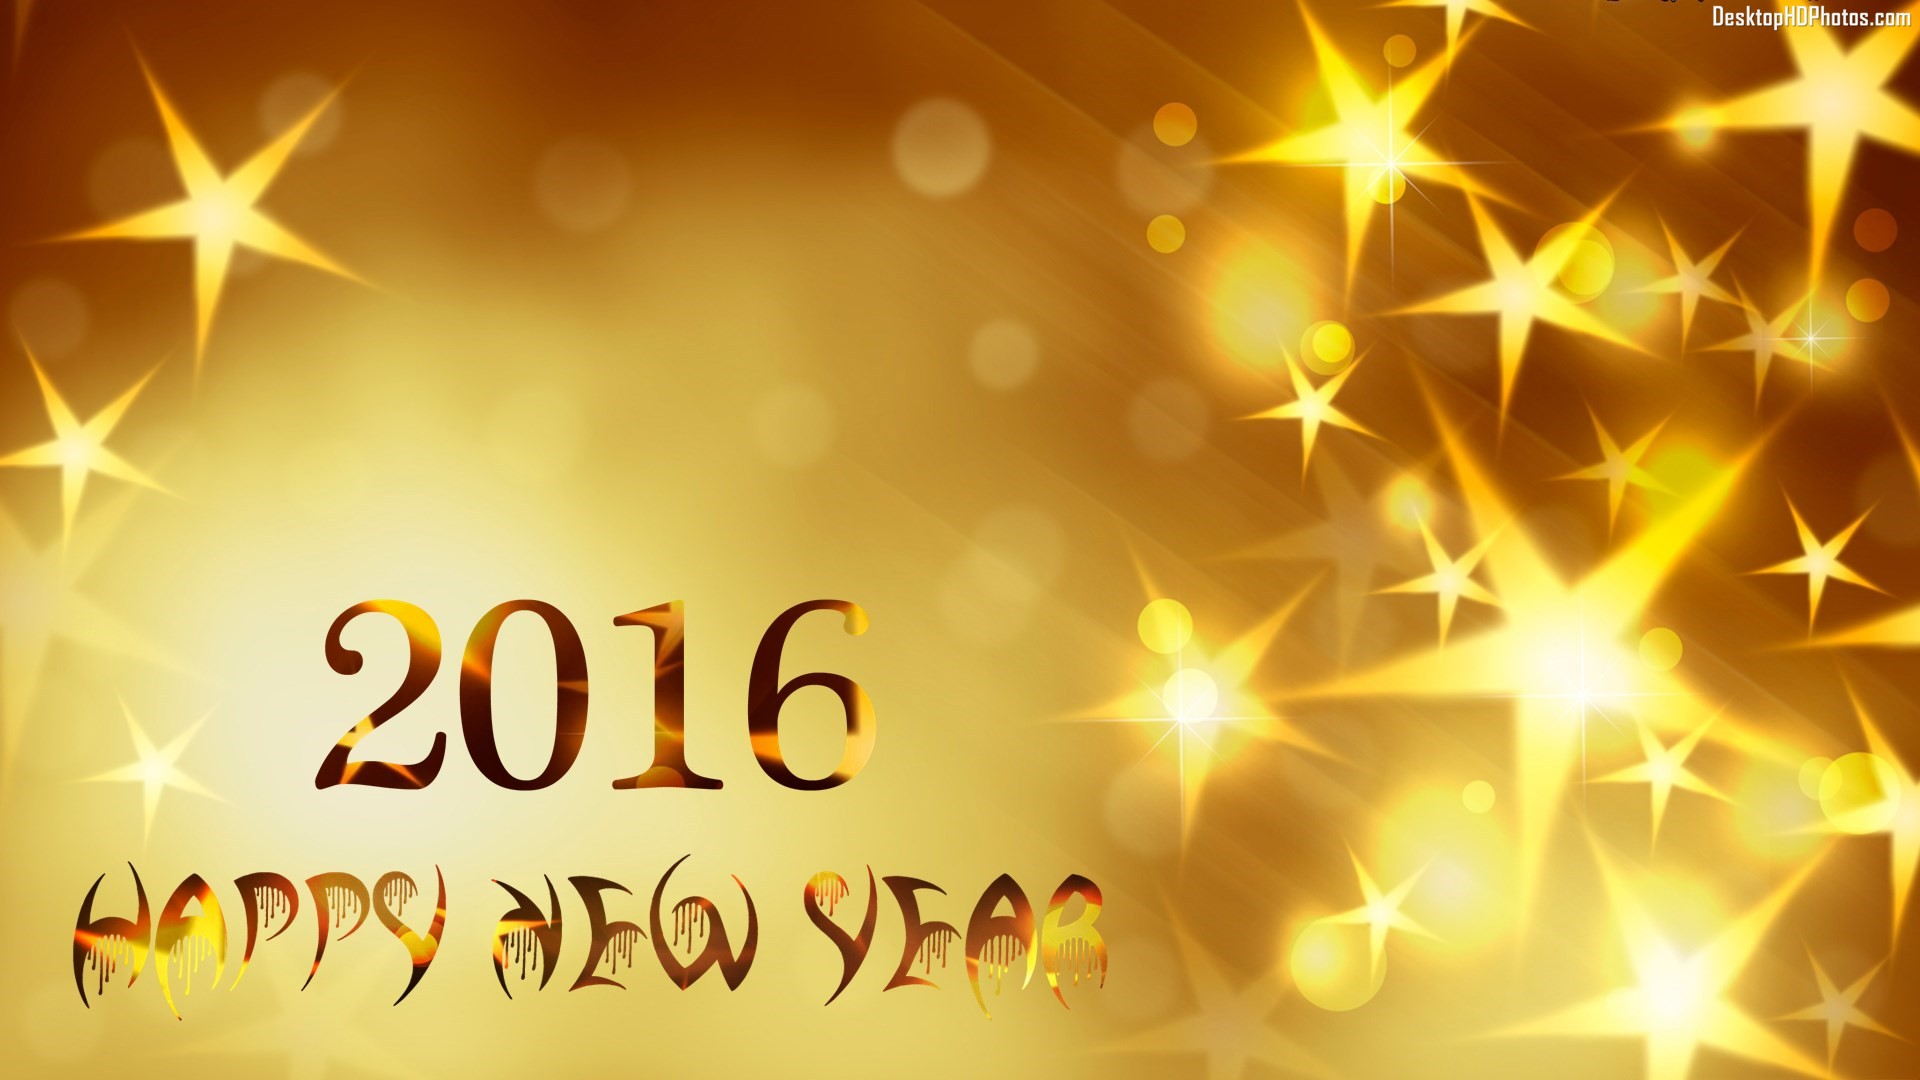 Happy New Year 2016 HD Wallpapers Images Download 1920x1080